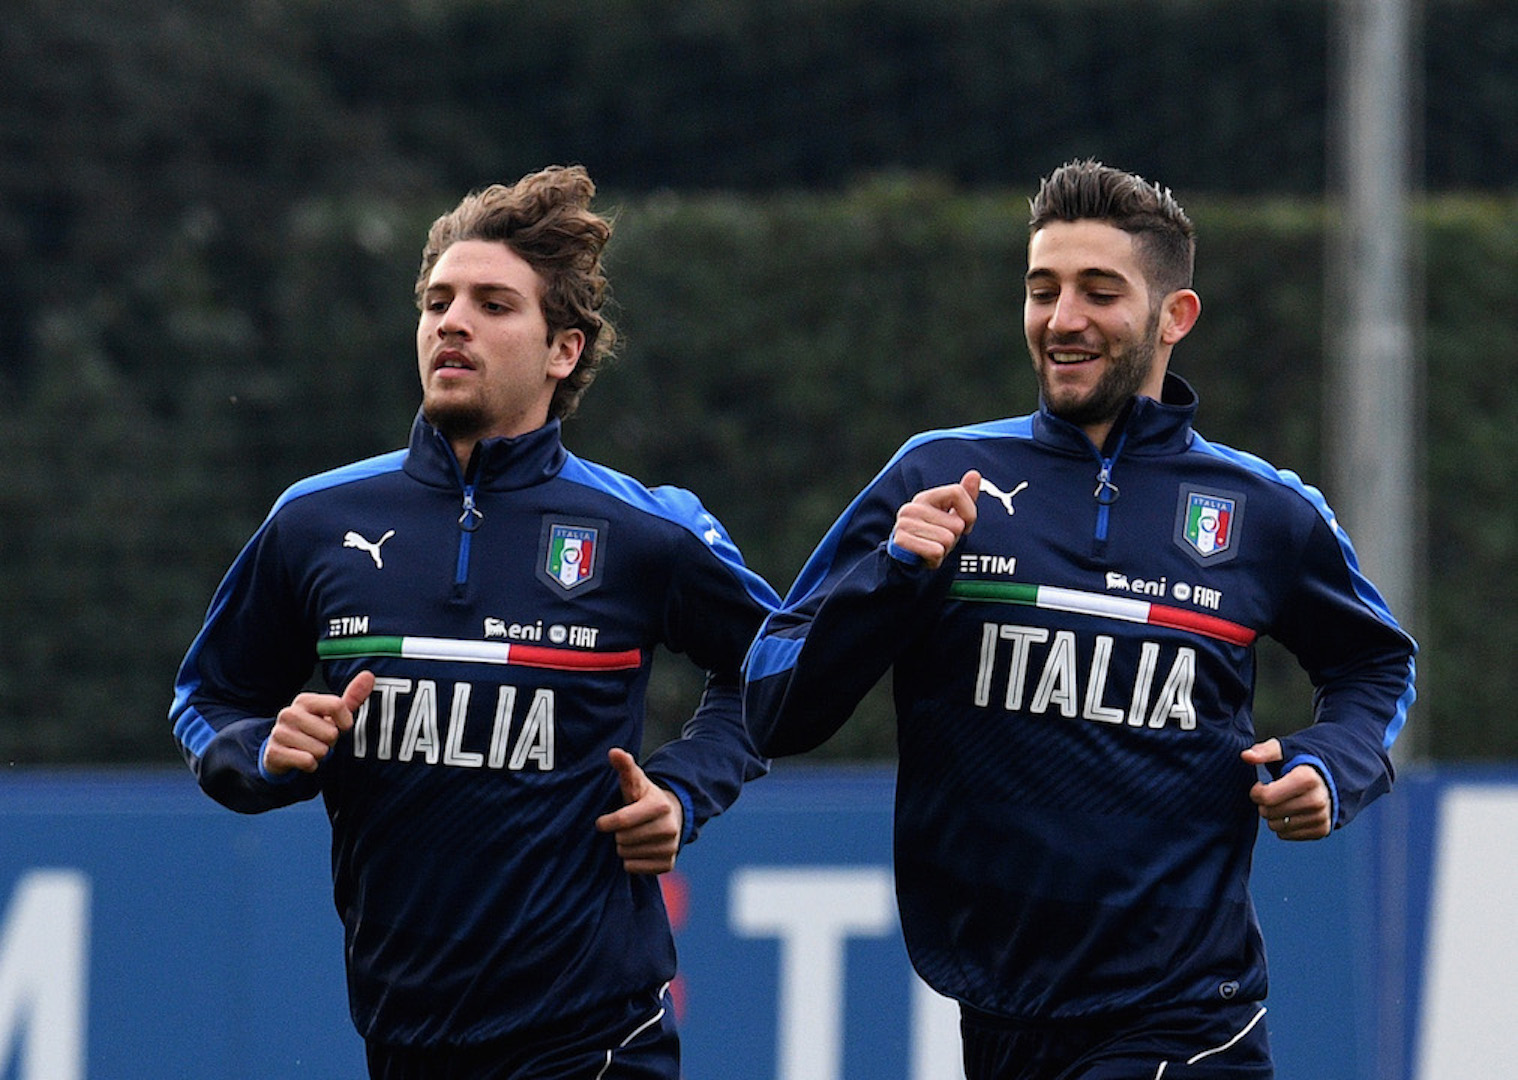 FLORENCE, ITALY - FEBRUARY 21: Manuel Locatelli (L) and Roberto Gagliardini of Italy in action during the training session at the club's training ground at Coverciano on February 21, 2017 in Florence, Italy. (Photo by Claudio Villa/Getty Images)